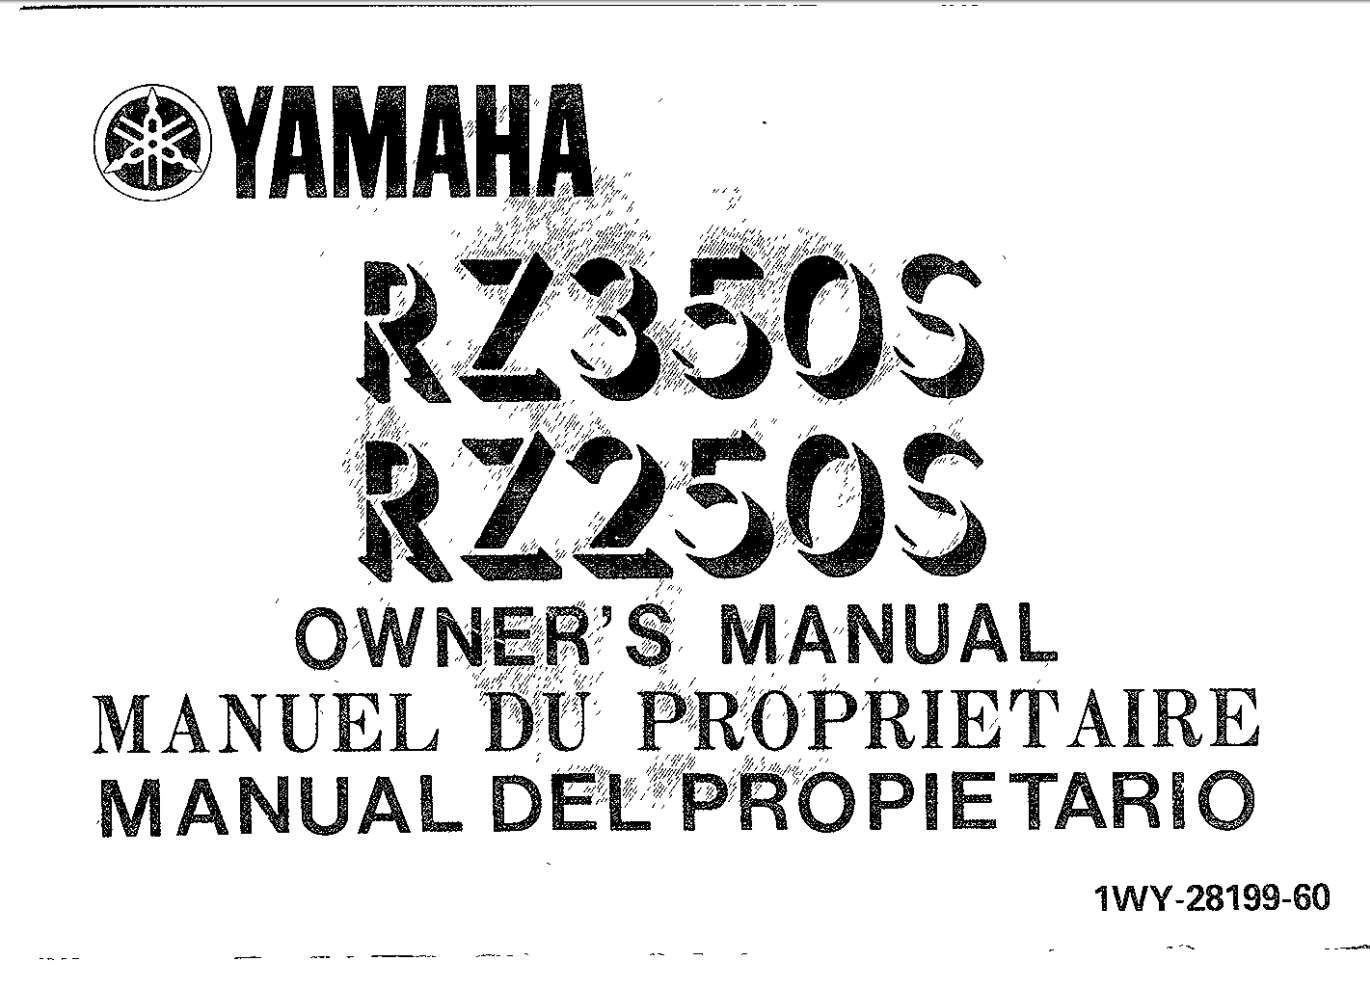 Yamaha RZ350 S (RZ250 S) 1987 Owner's Manual in 2020